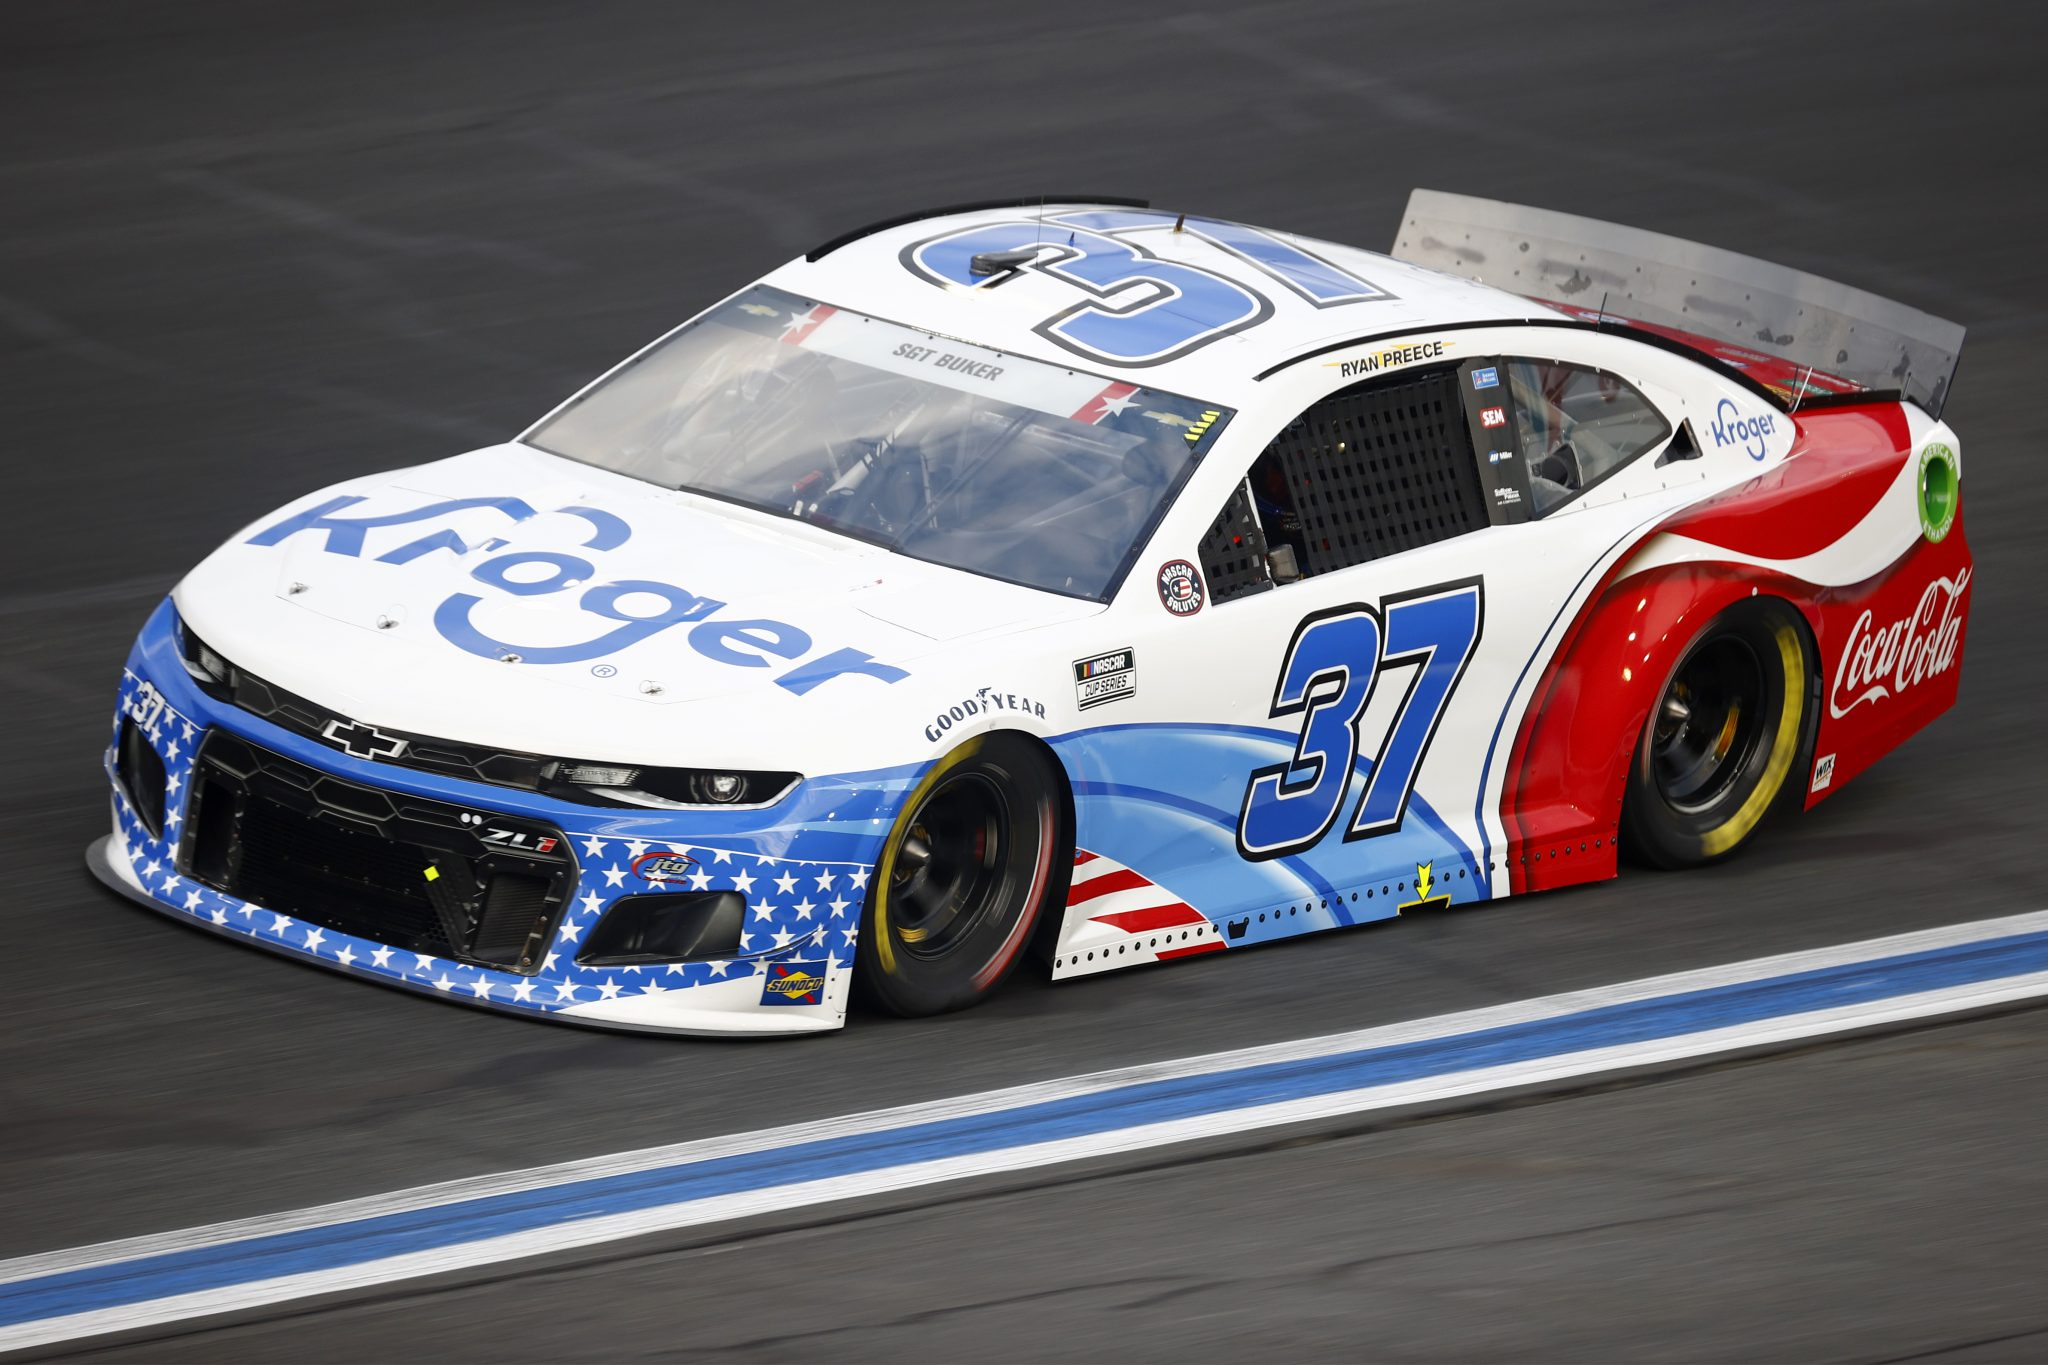 CONCORD, NORTH CAROLINA - MAY 28: Ryan Preece, driver of the #37 Kroger/Coca-Cola Chevrolet, drives during practice for the NASCAR Cup Series Coca-Cola 600 at Charlotte Motor Speedway on May 28, 2021 in Concord, North Carolina. (Photo by Jared C. Tilton/Getty Images) | Getty Images